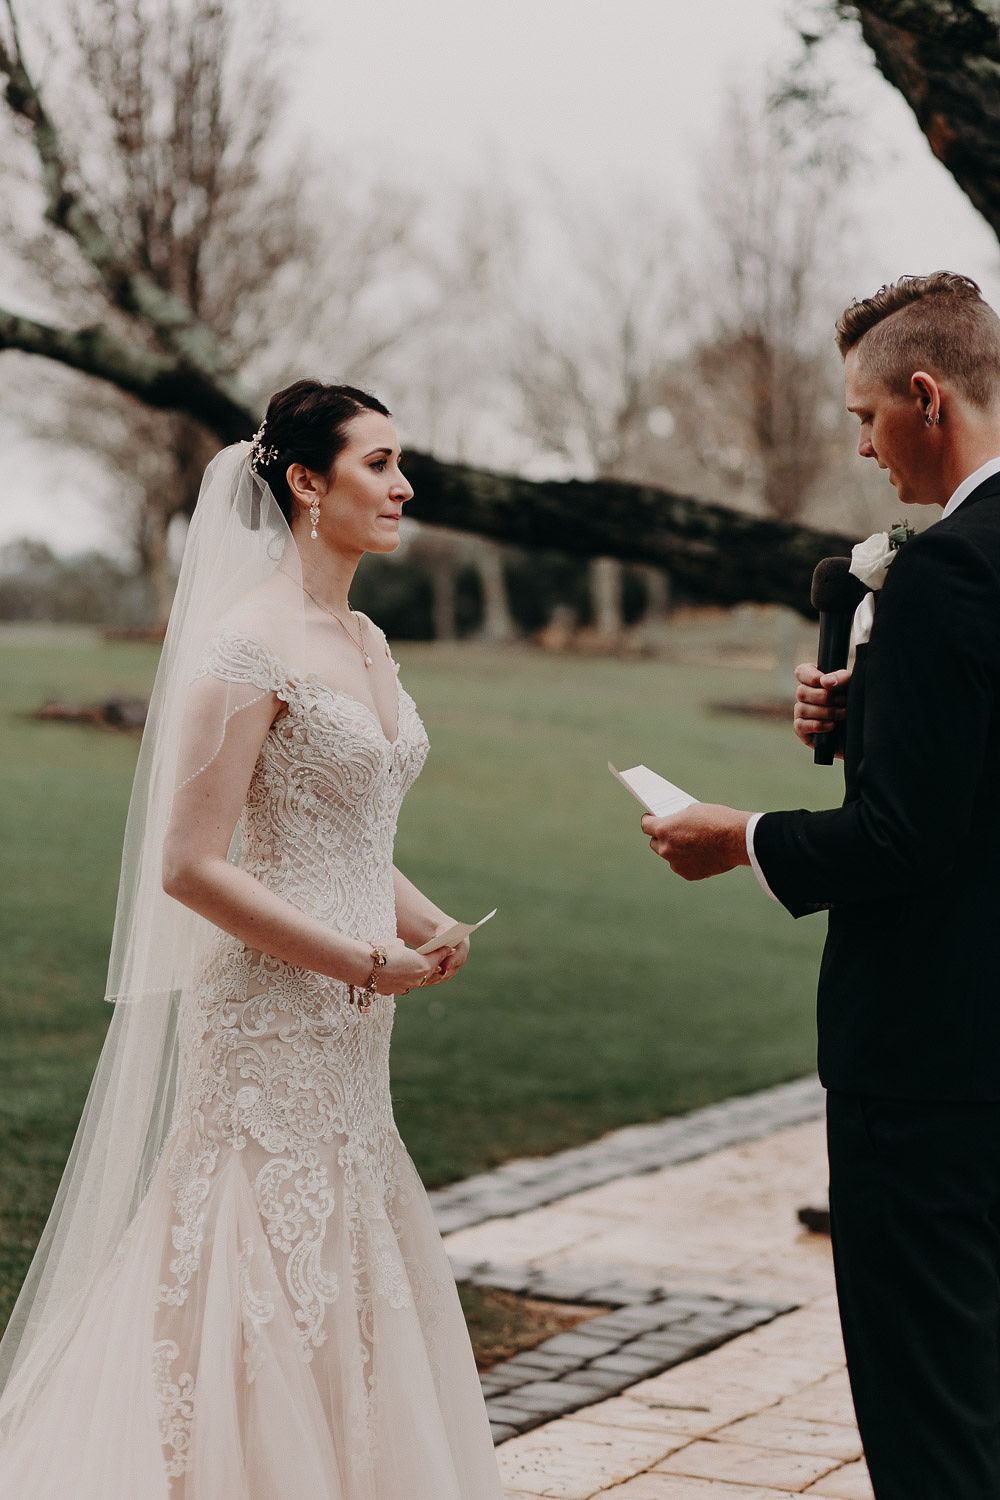 fennel and fern photography real weddings to the aisle australia floral design venue bridal gown makeup